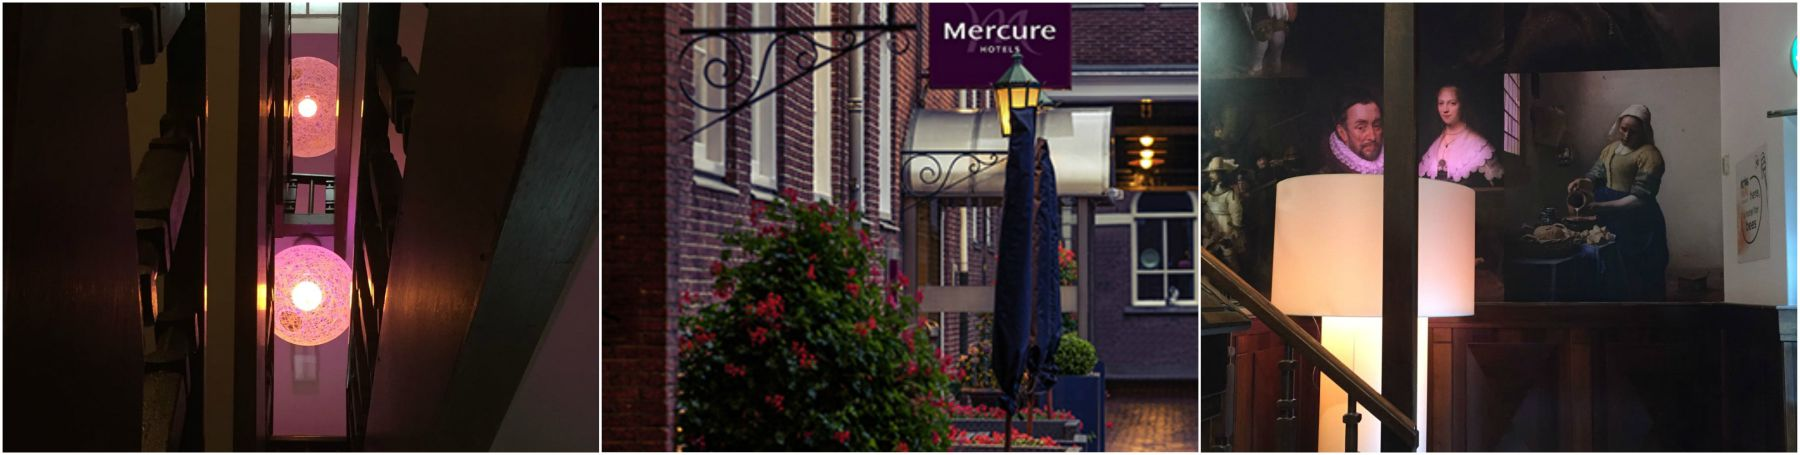 MERCUREHOTEL_COLLAGE1